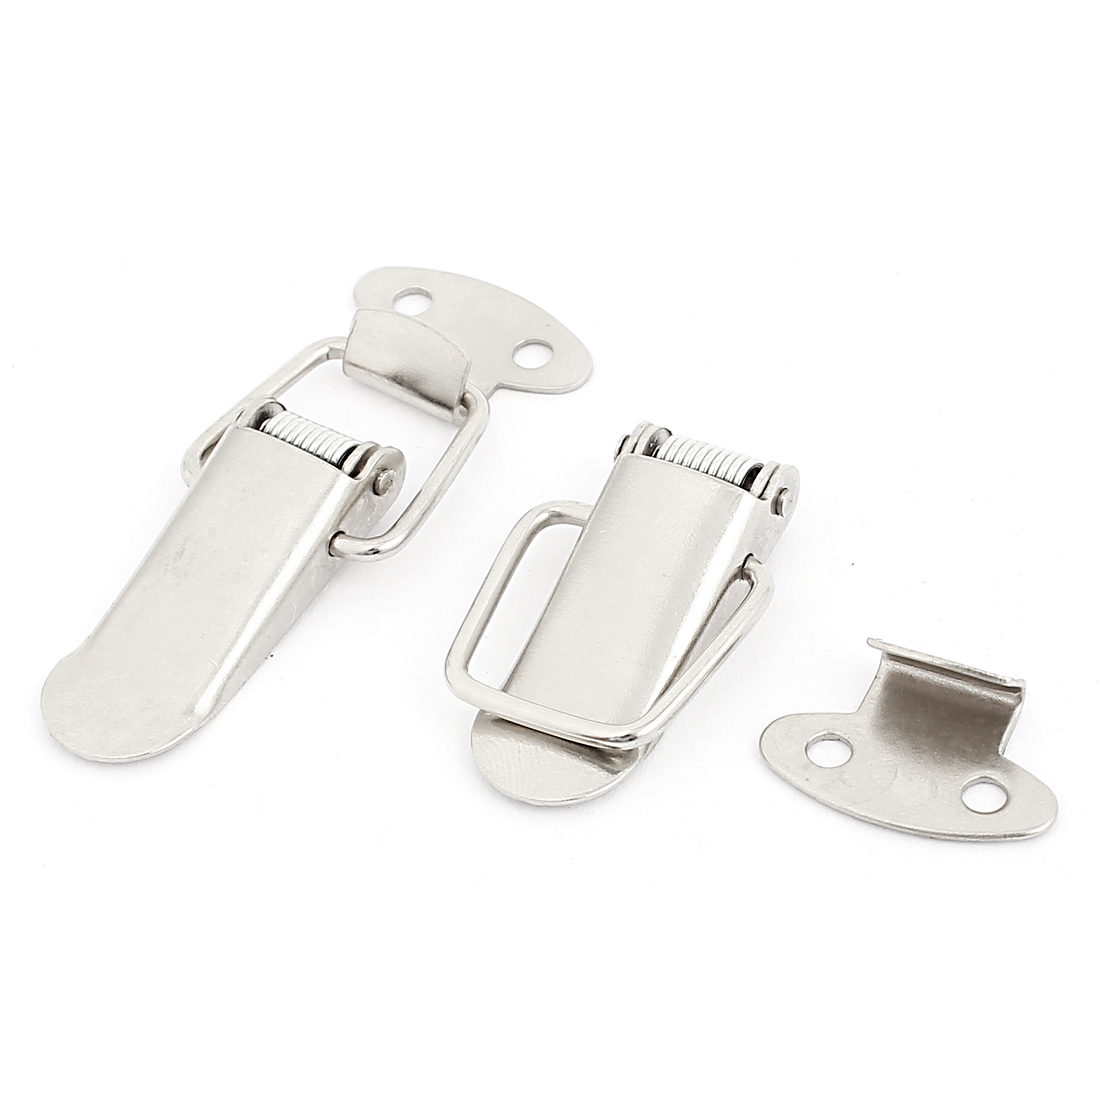 Bags Boxes Cases Stainless Steel Spring Draw Toggle Latch Catch Silver Tone 2Pcs